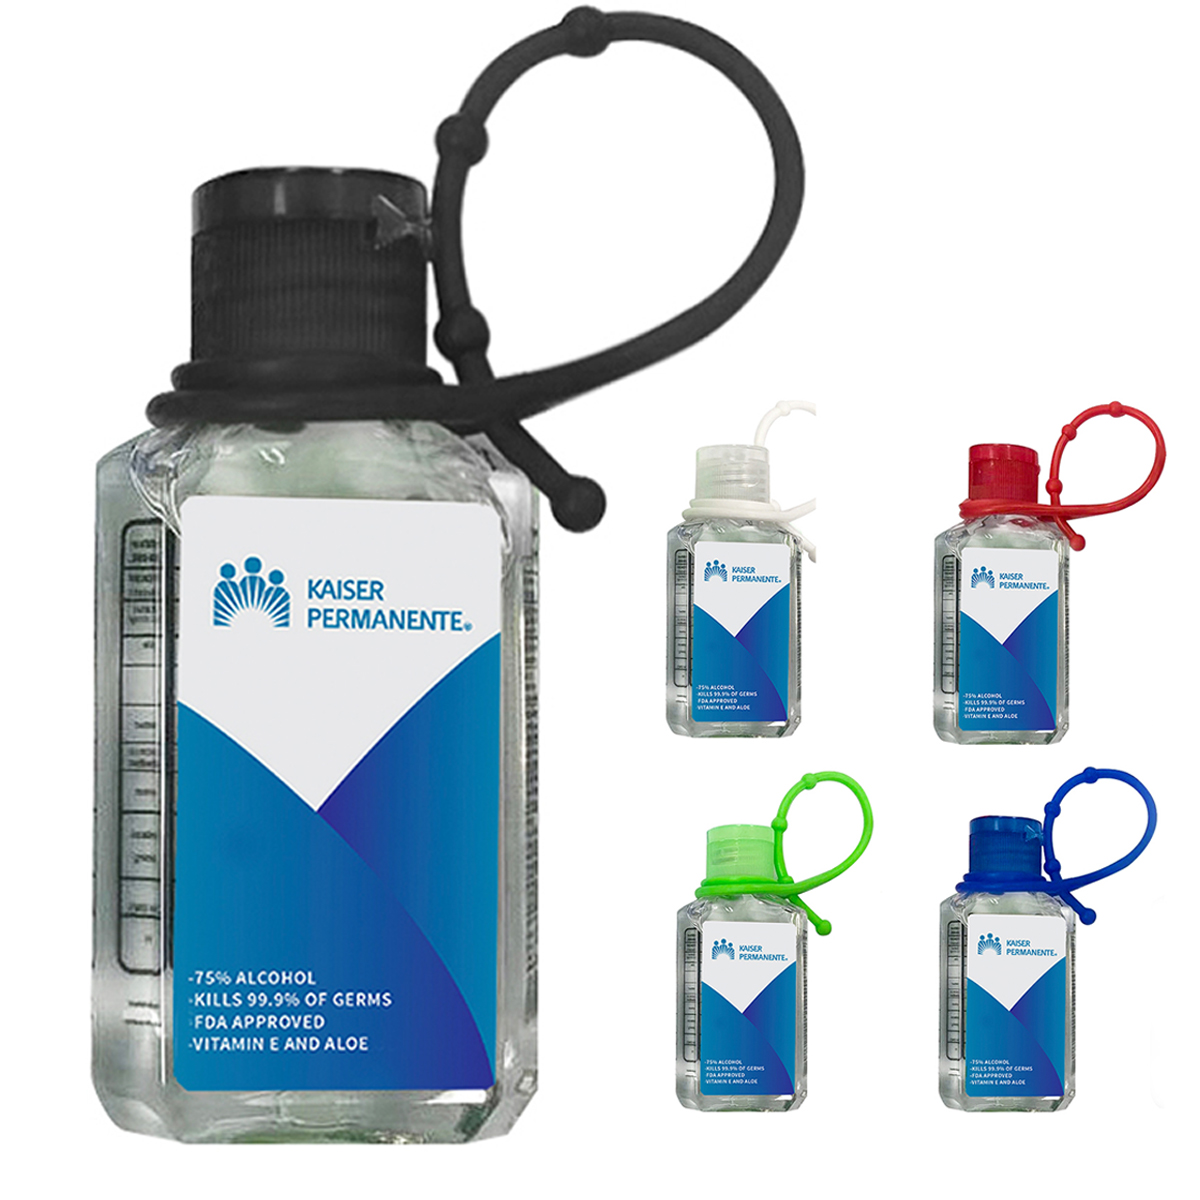 2.0 OZ HAND SANITIZER WITH SILICONE LOOP